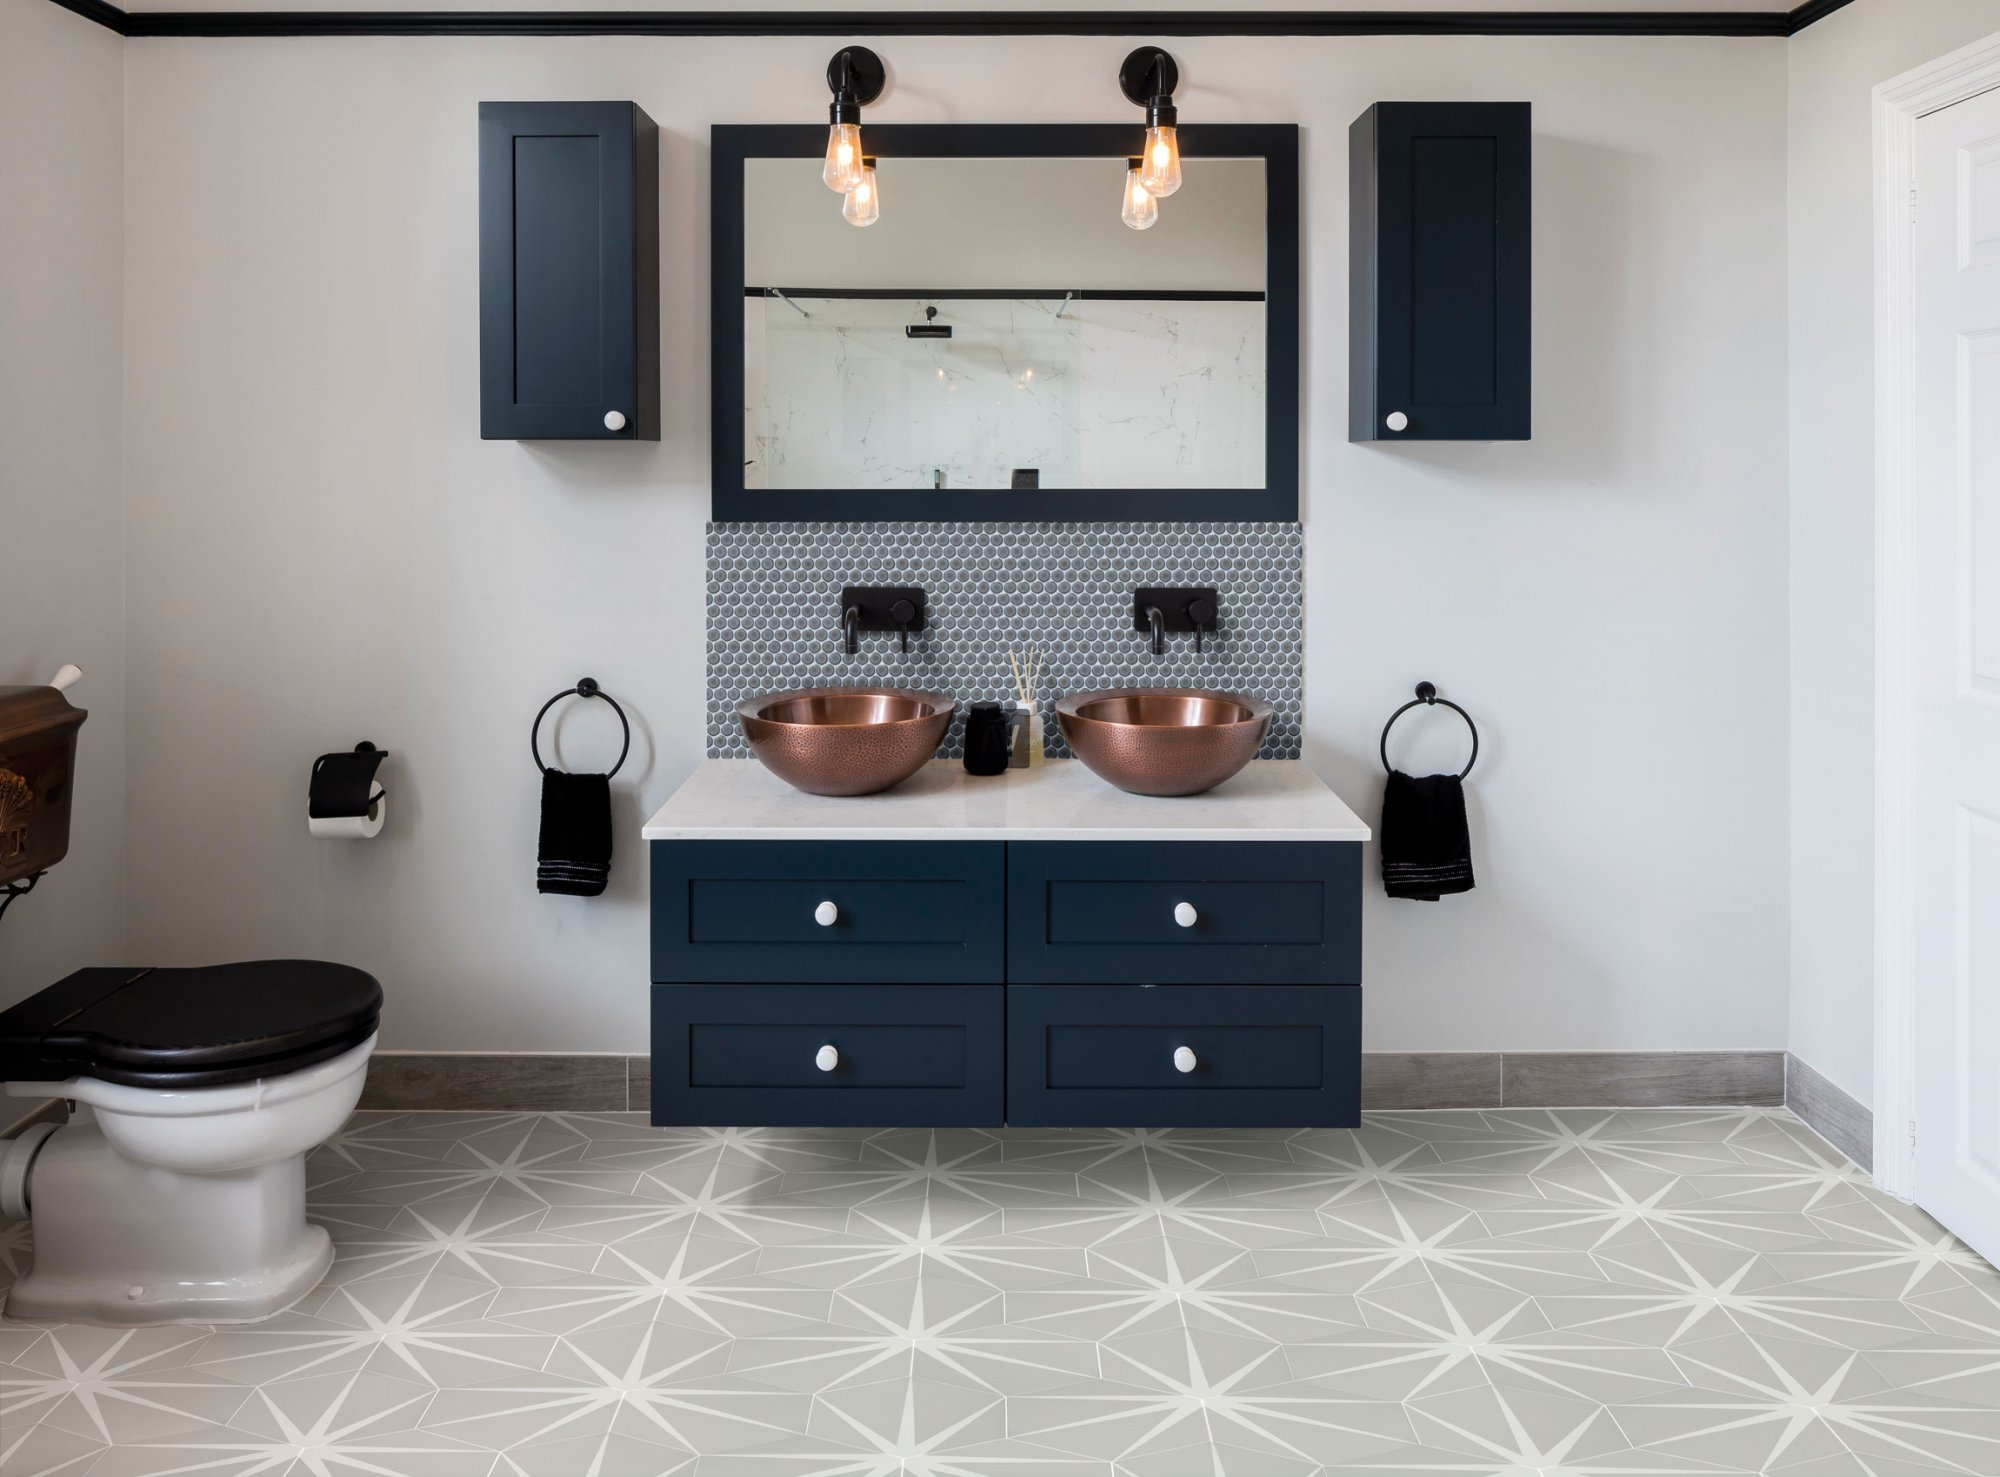 West One Bathrooms file watermark Cloud Floor   Tempest Penny Splash Back  1